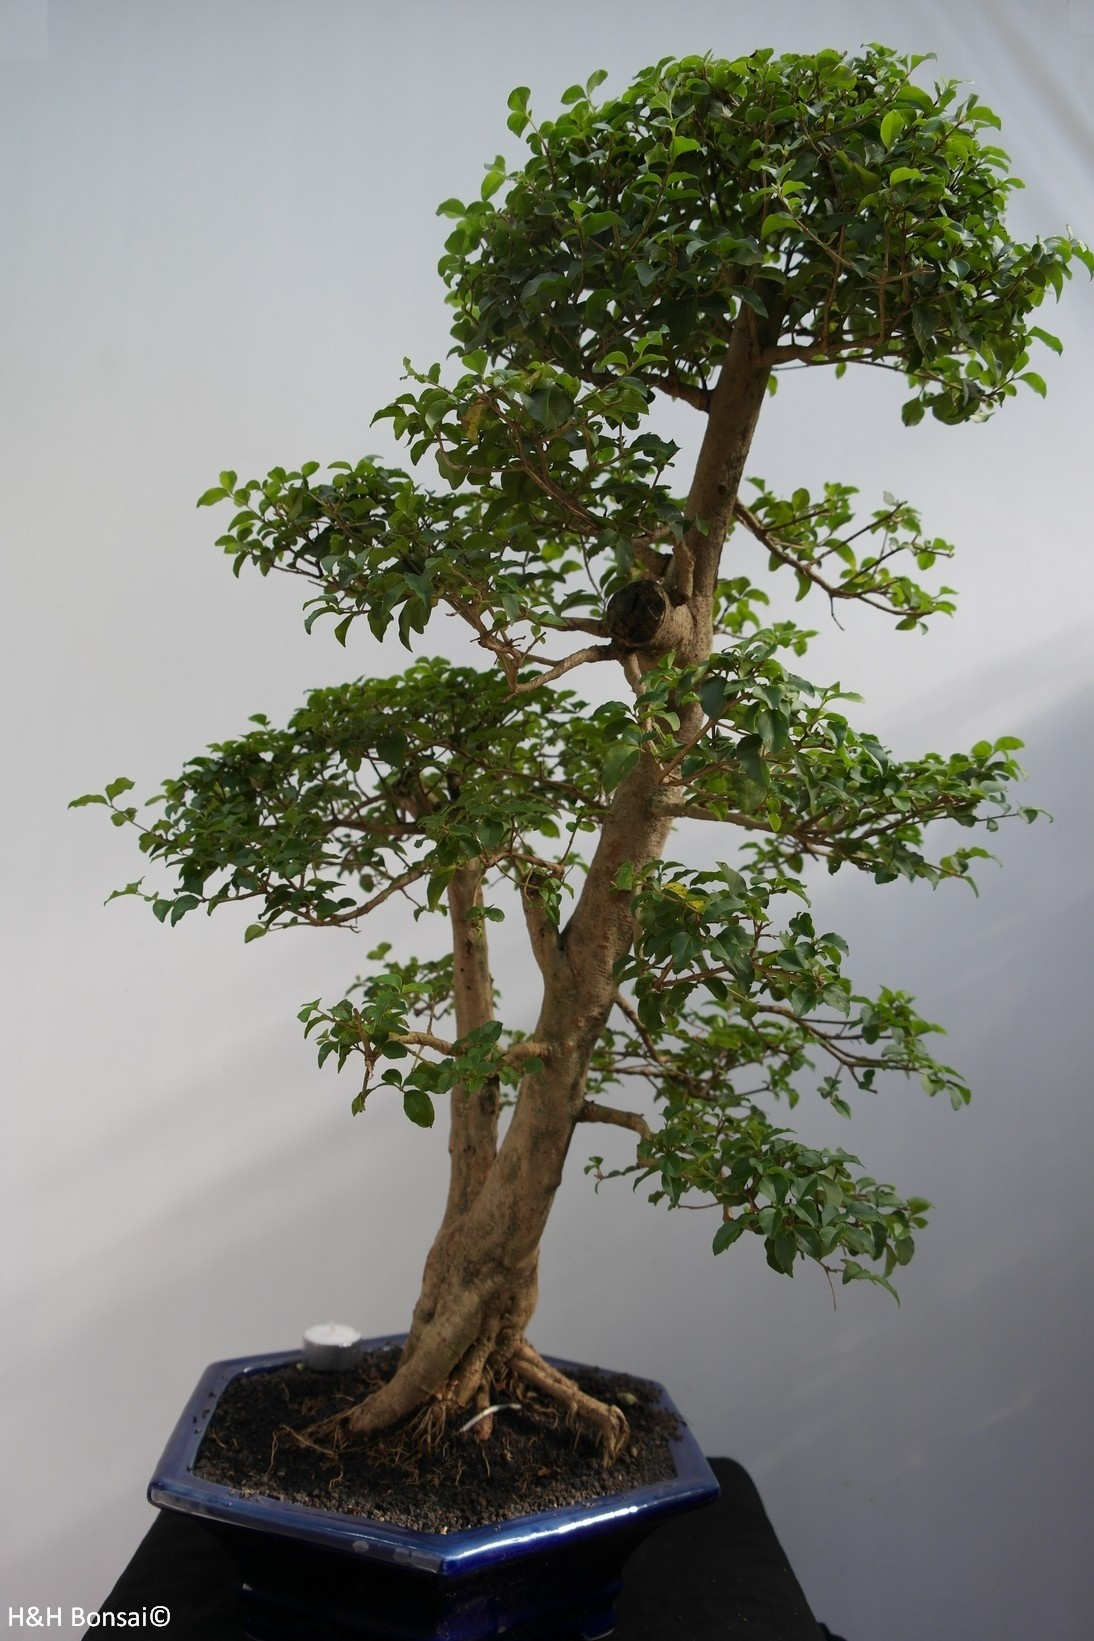 Bonsai Troène, Ligustrum sinense, no. 7846